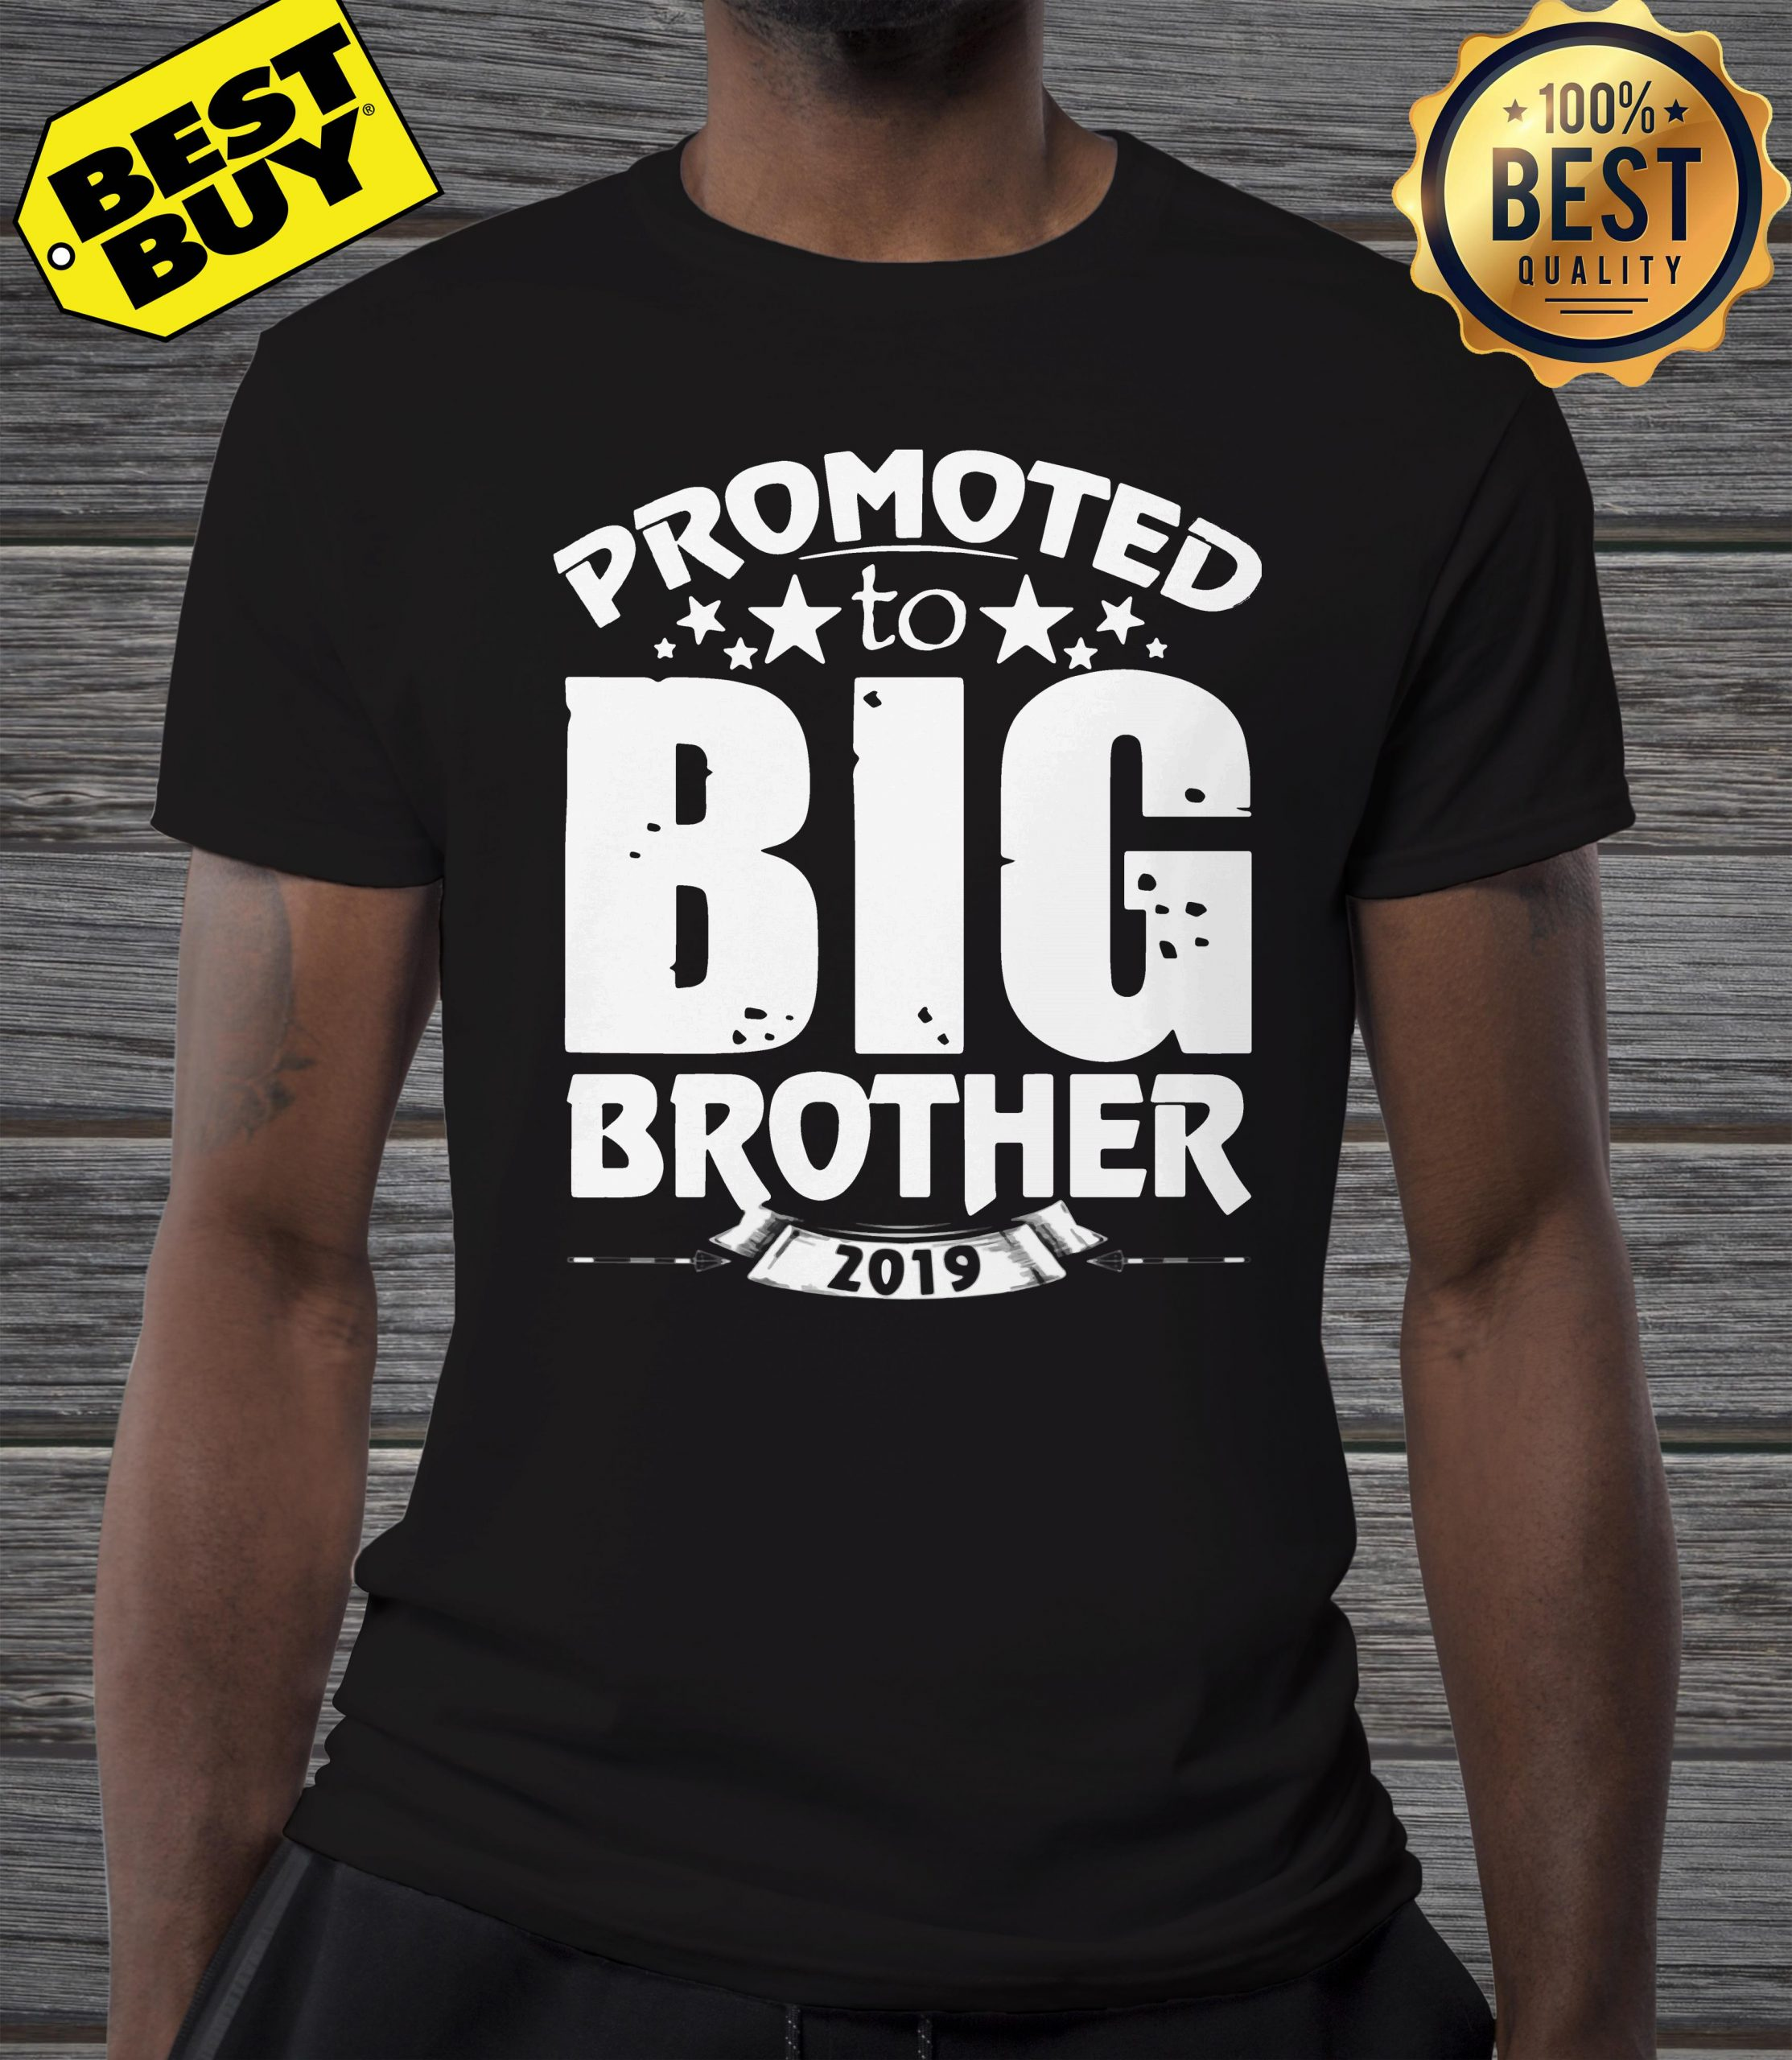 Promoted to Big Star Brother 2019 shirt